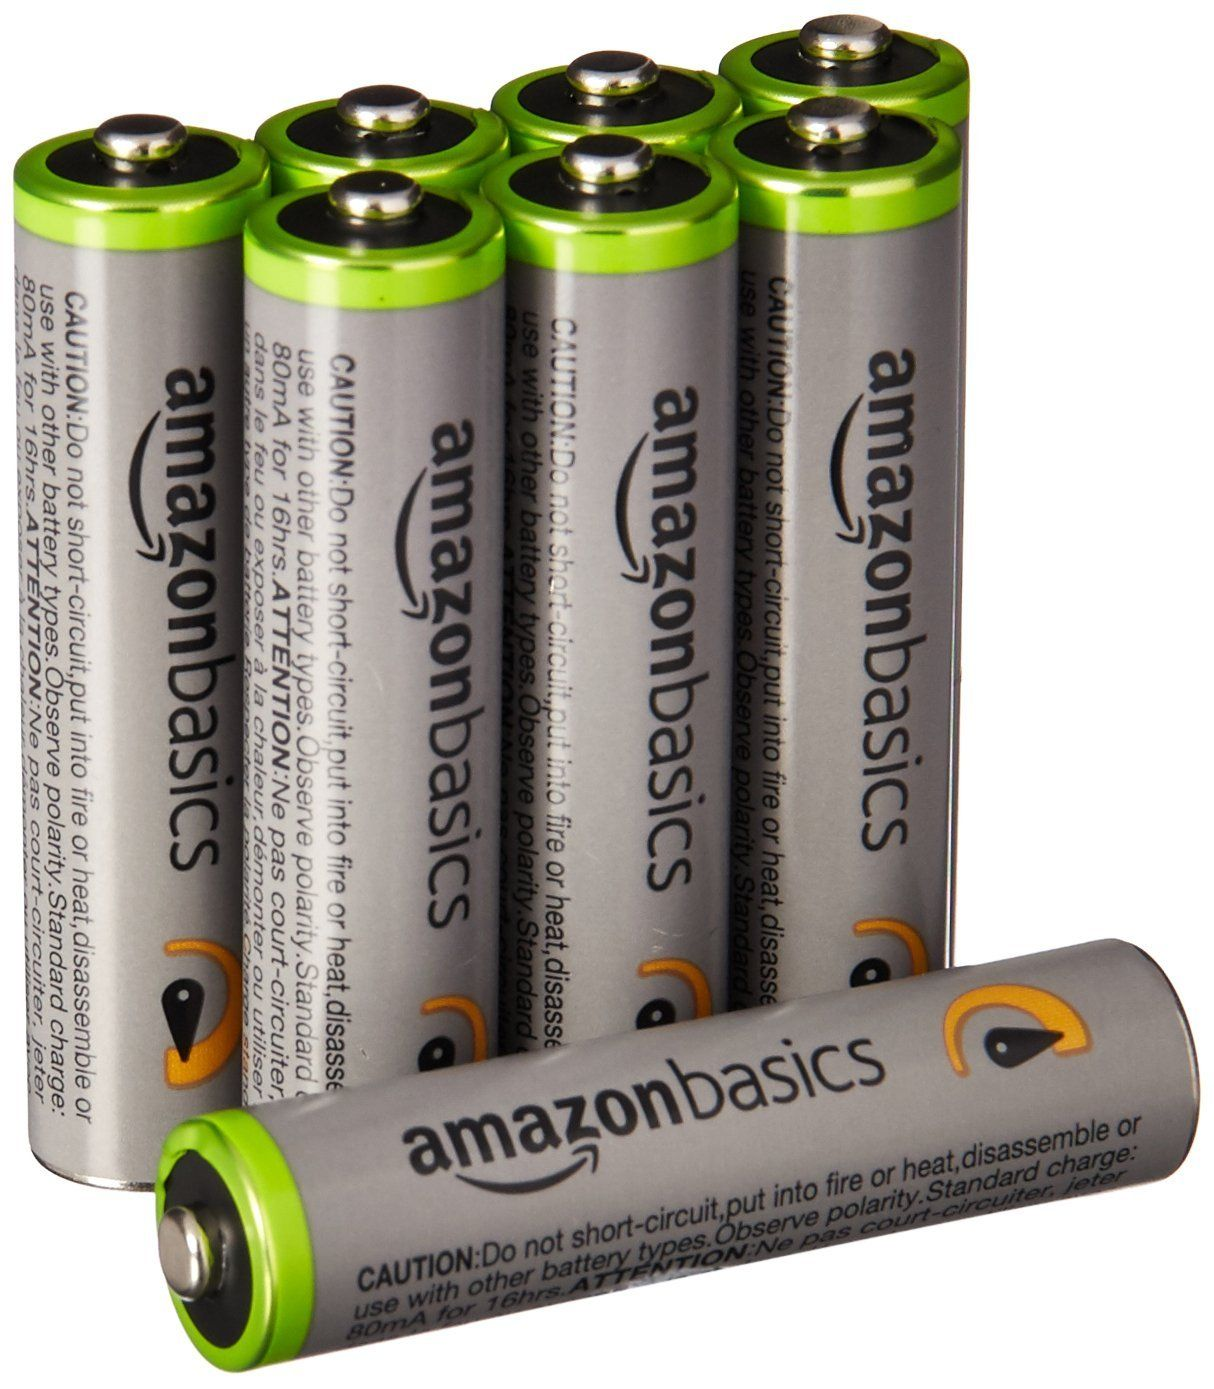 Pin By Anna Henson On Cool Useful Stuff Rechargeable Batteries Batteries Battery